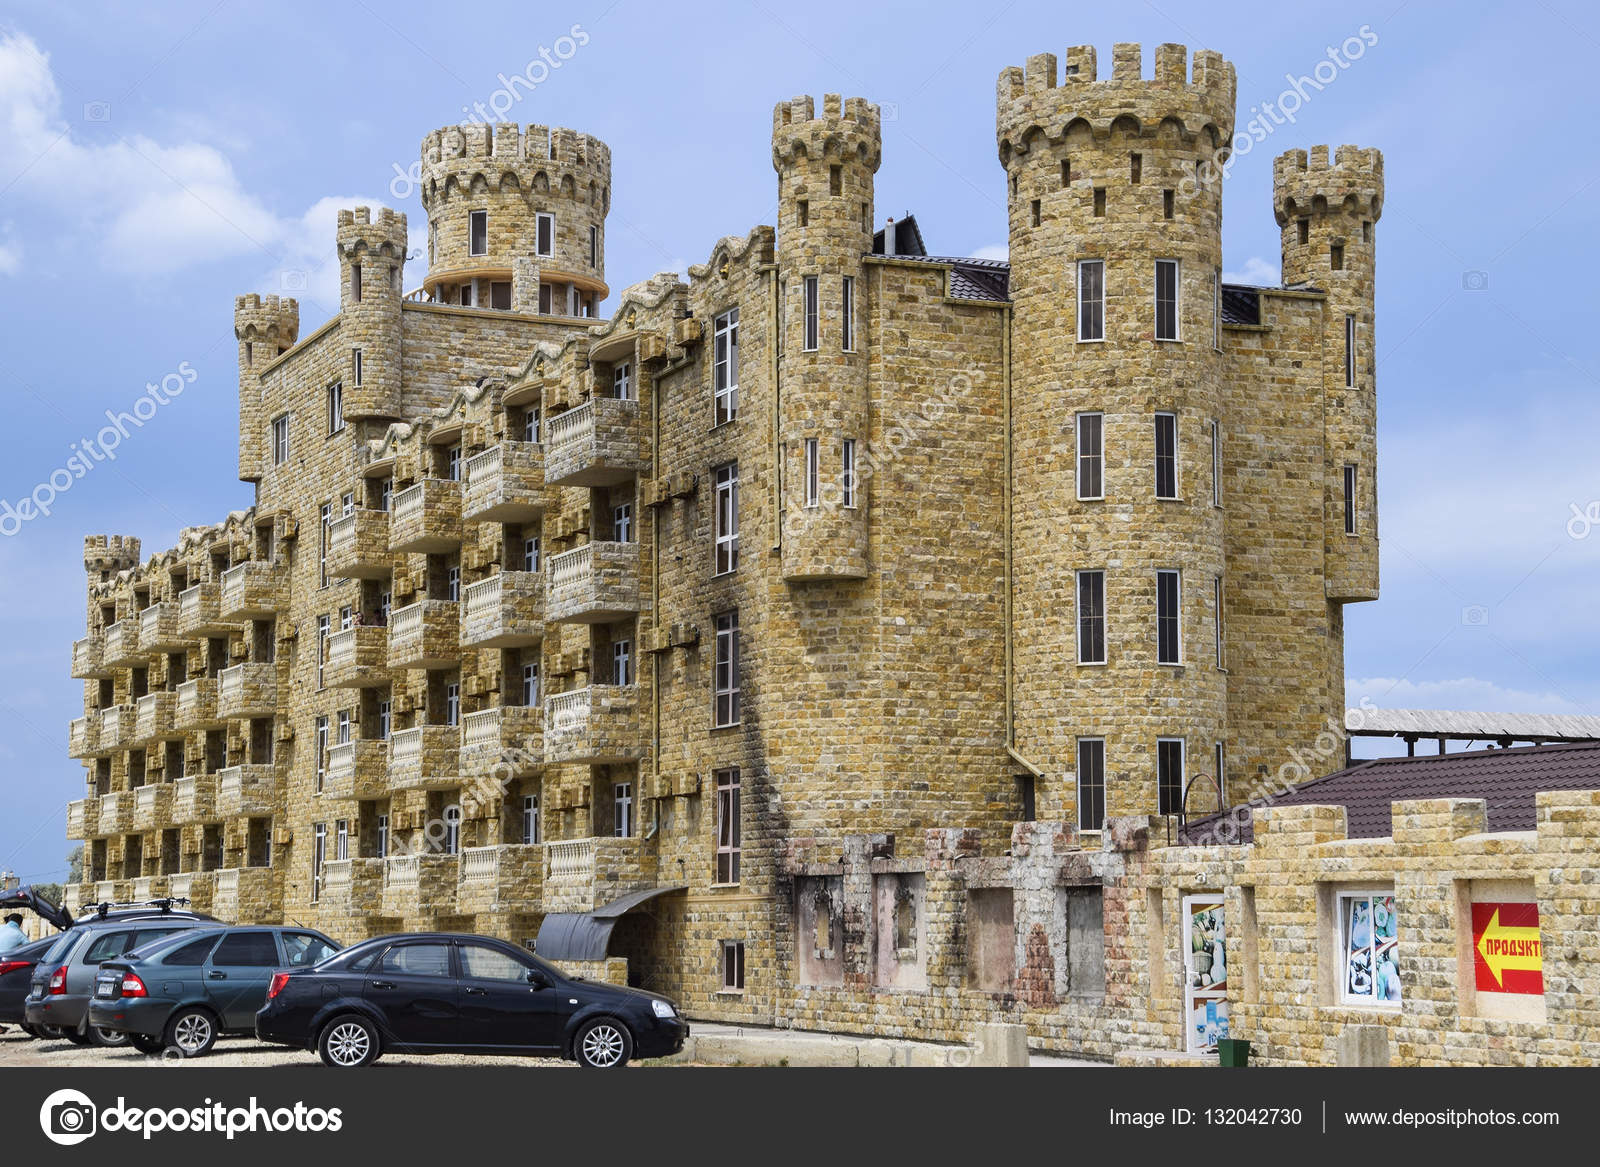 the hotel building covered with decorative stone multi storey hotel with a decorative